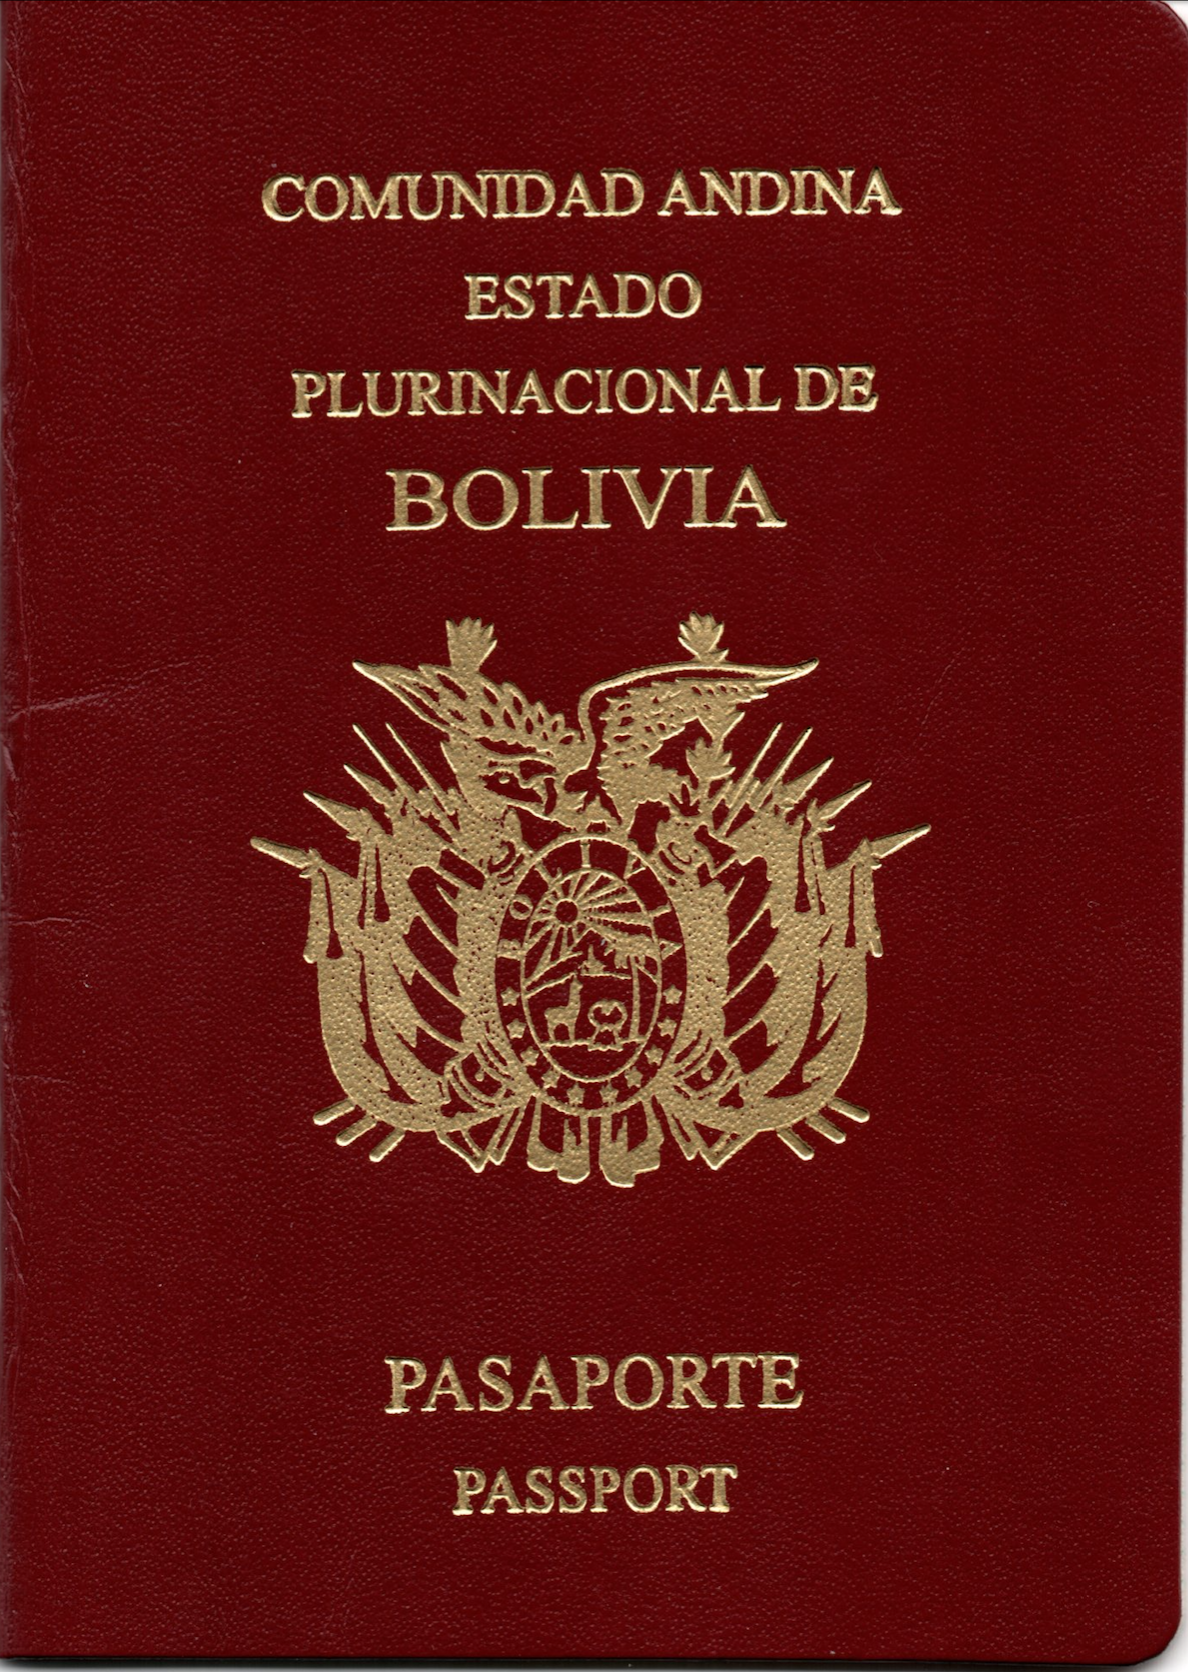 Visa requirements for Bolivian citizens - Wikipedia